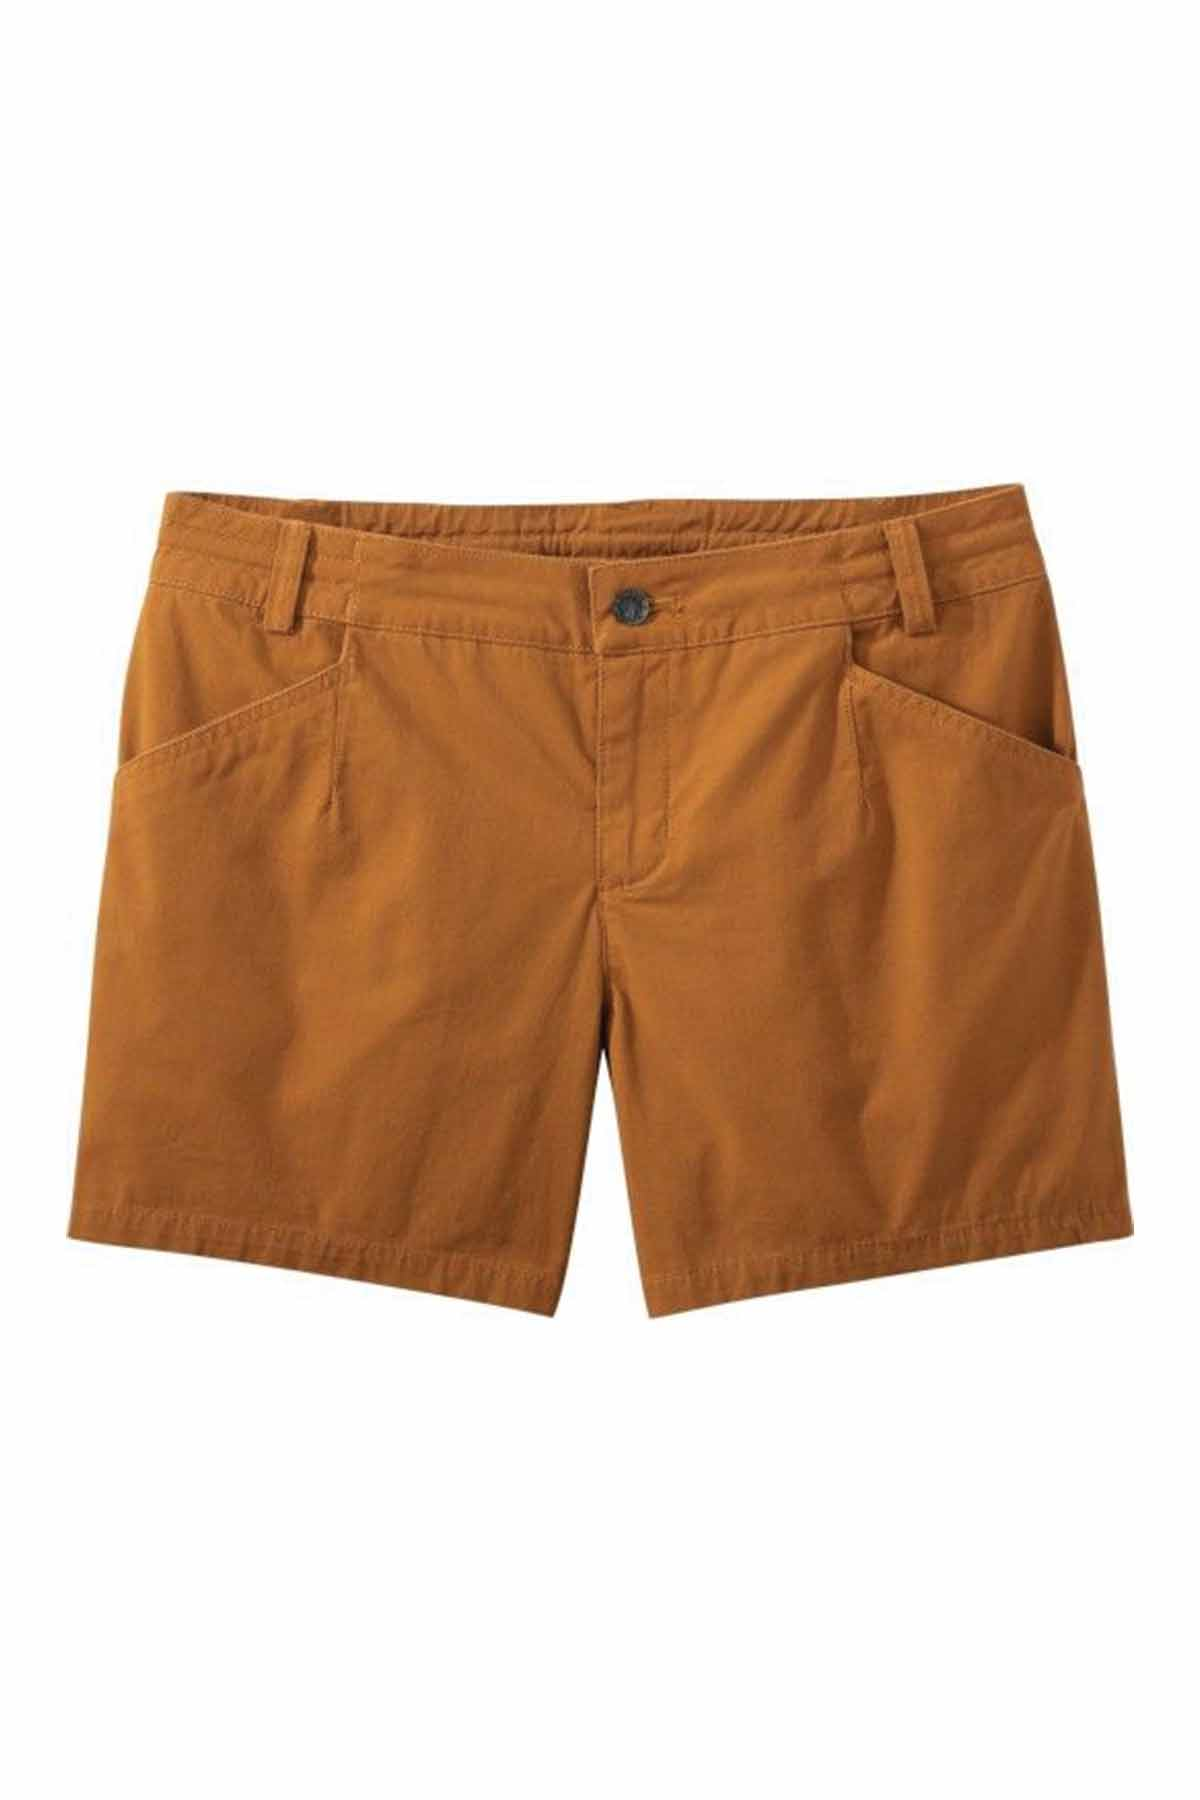 OR Women's Wadi Shorts Curry